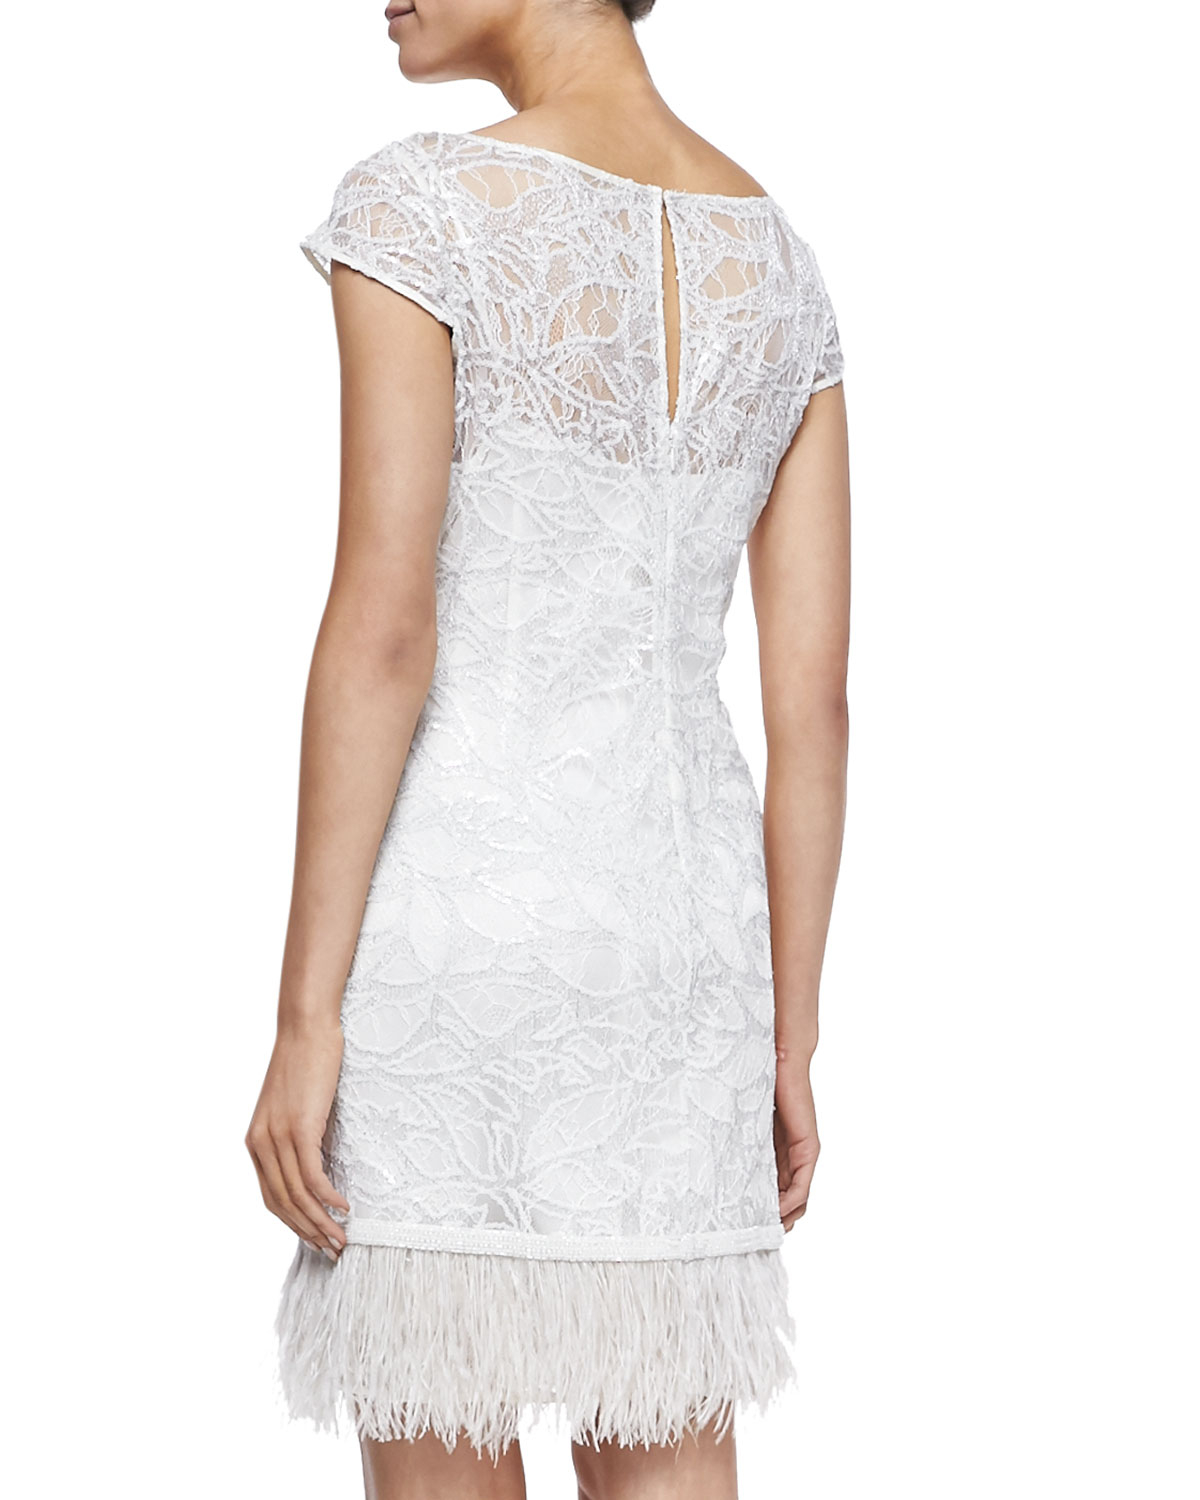 76fdc021df7 Lyst - Kay Unger Lace Overlay Cocktail Dress W  Feather Hem in White